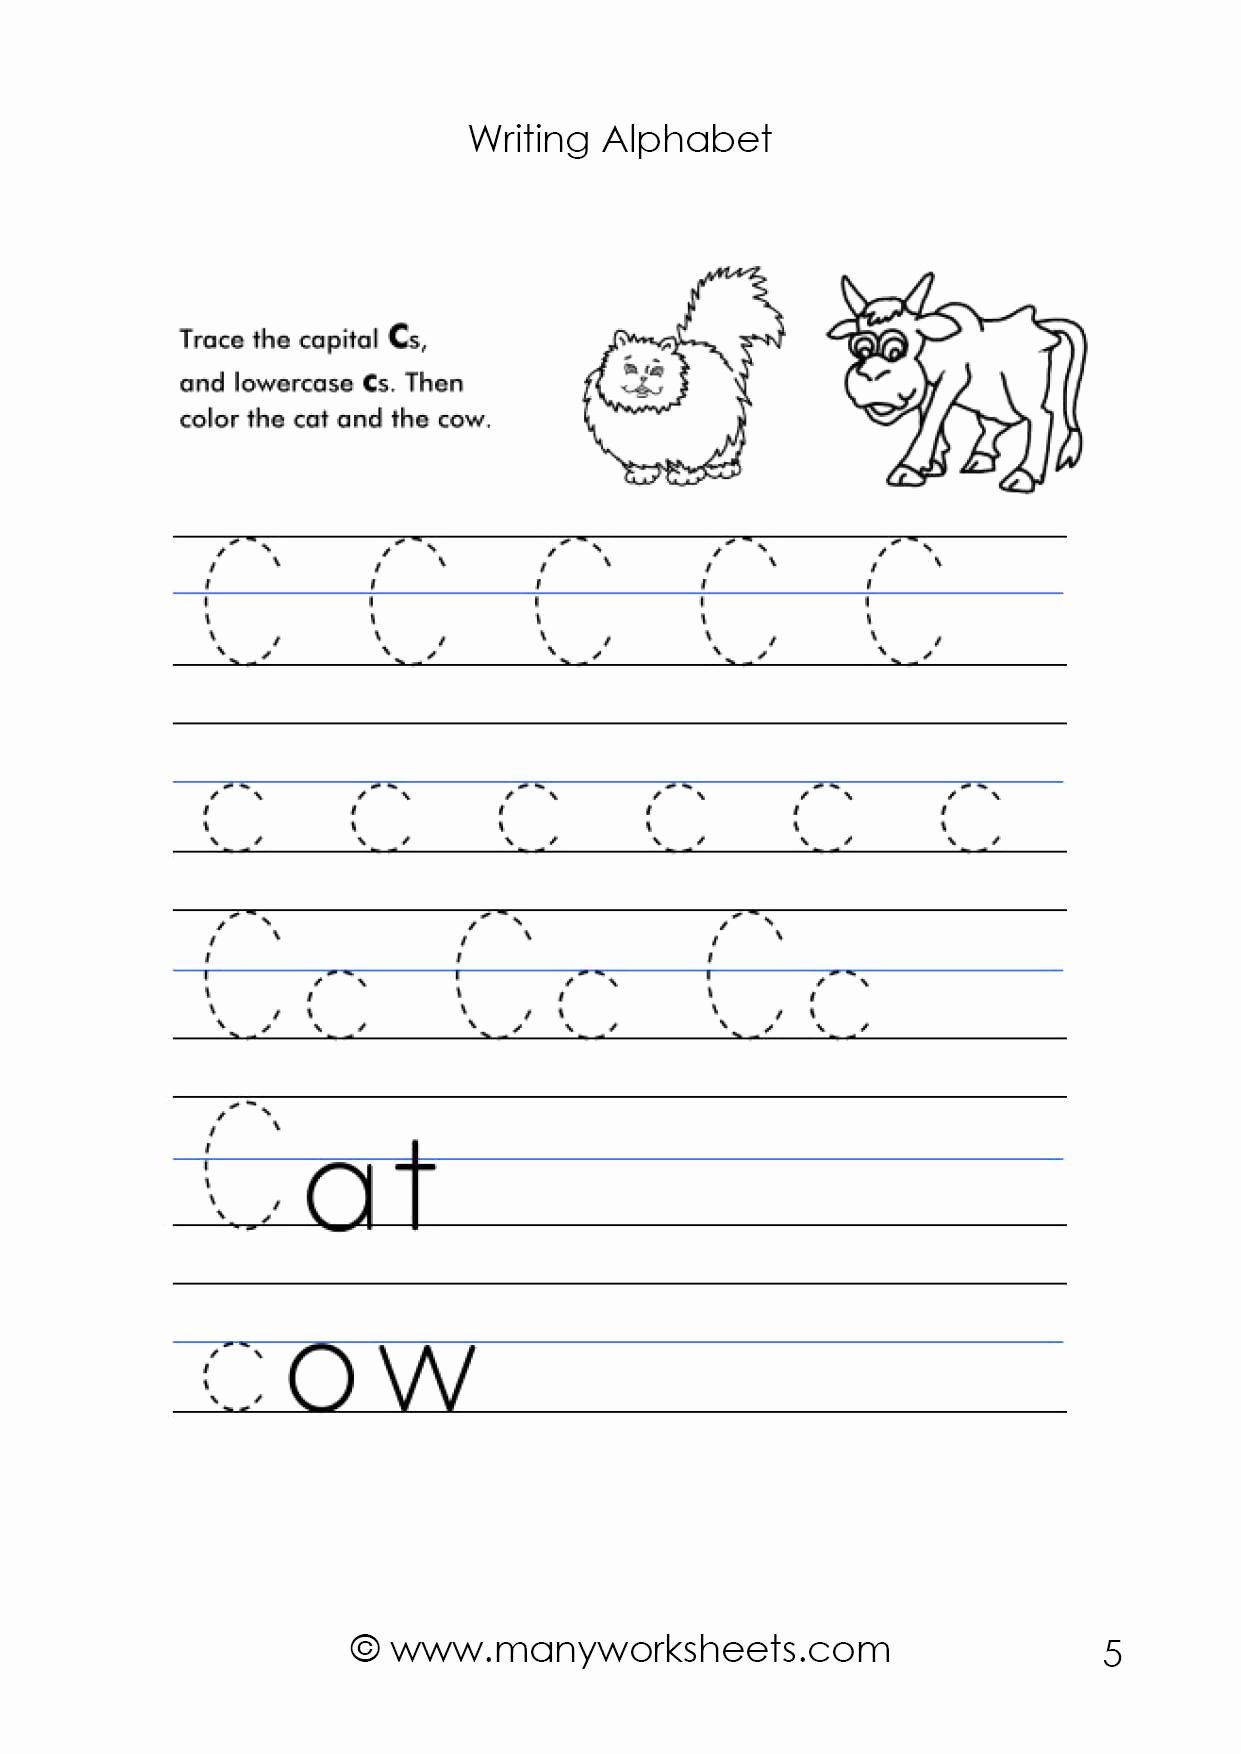 Letter C Tracing Worksheets for Preschoolers Inspirational Math Worksheet Letter Worksheet Tracing and Handwritingice